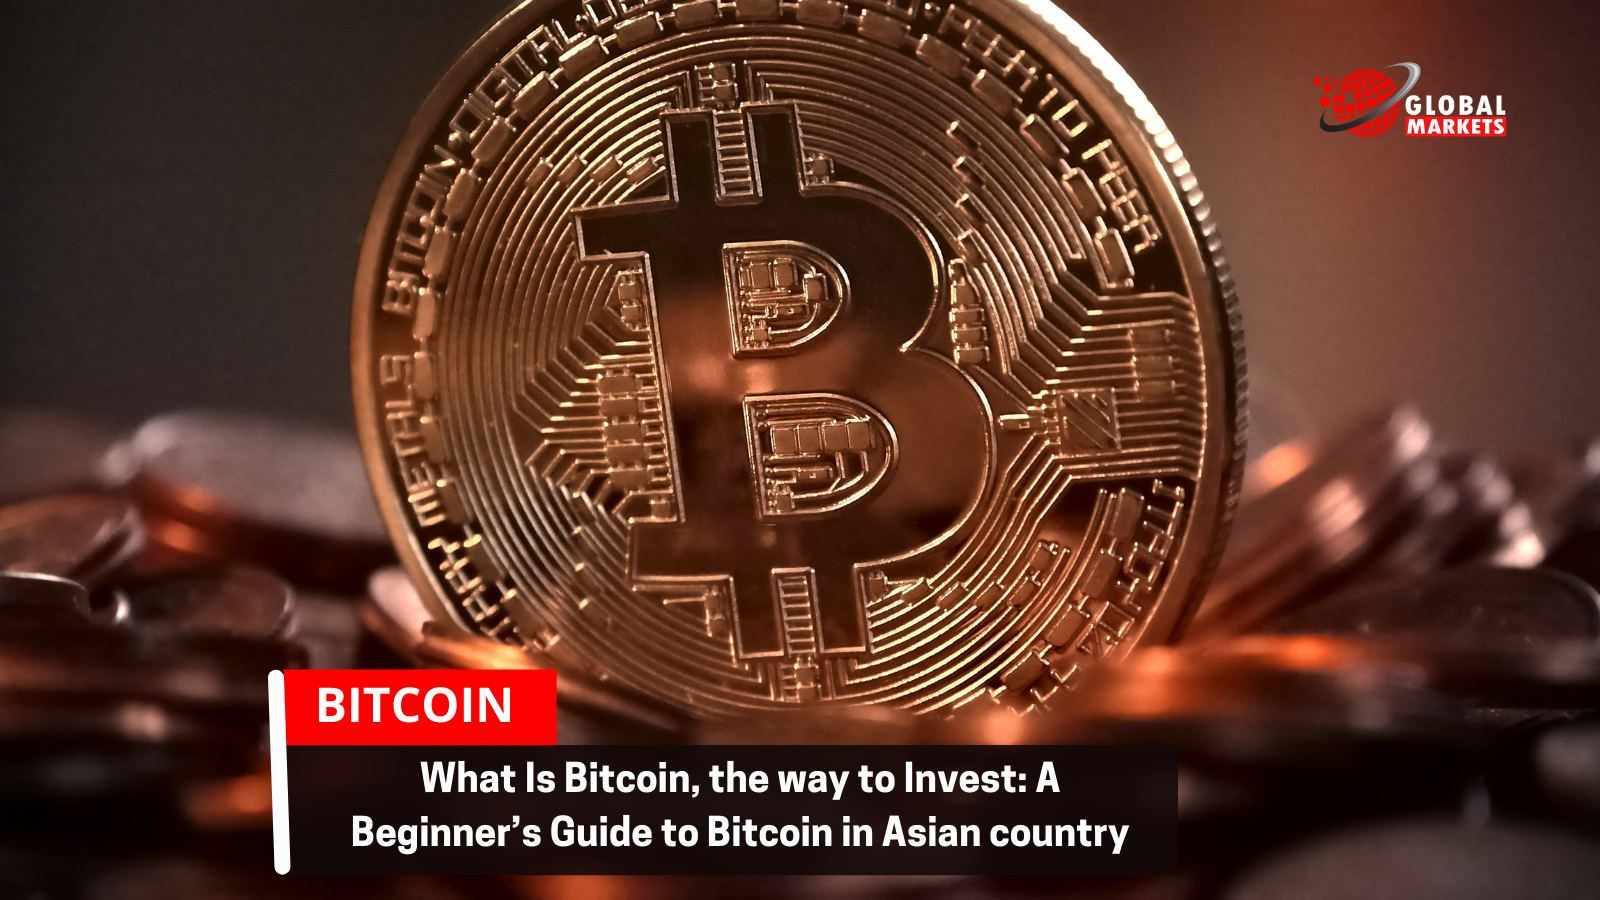 What Is Bitcoin, the way to Invest: A Beginner's Guide to Bitcoin in Asian country